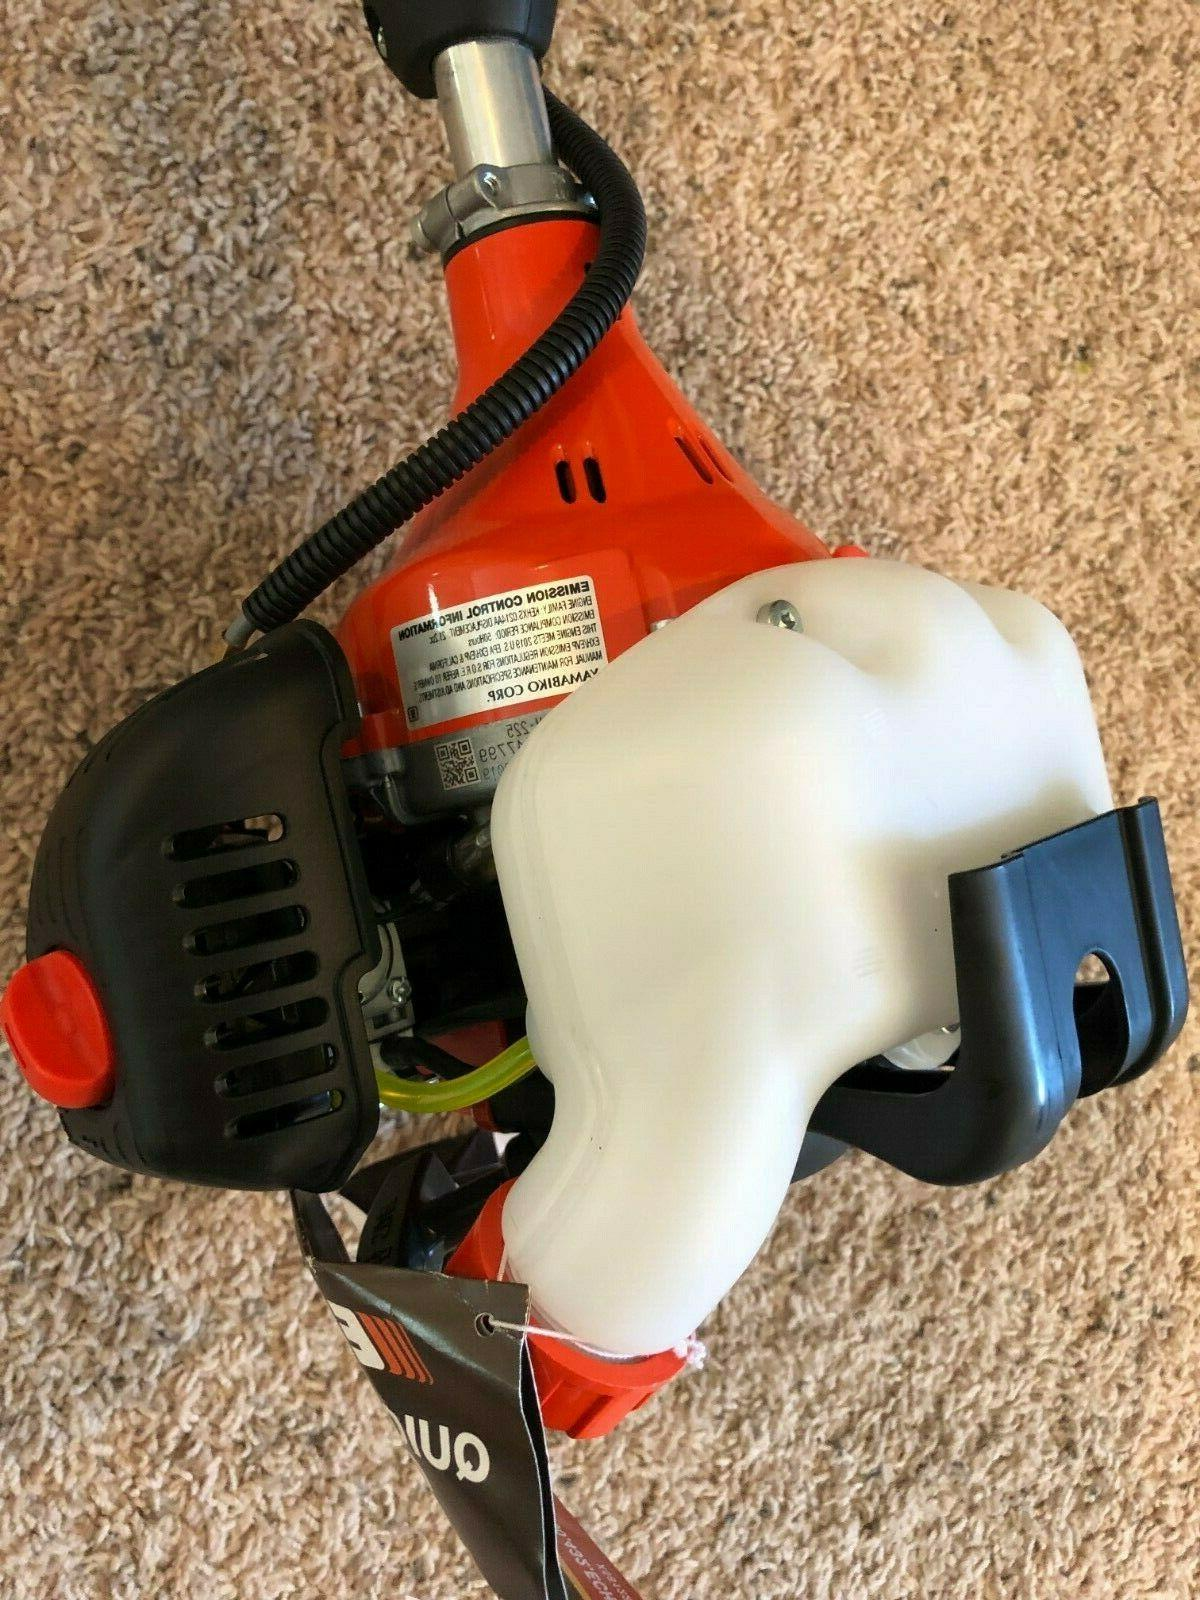 Straight Shaft Trimmer Weed Eater Professional 21.2 cc speed